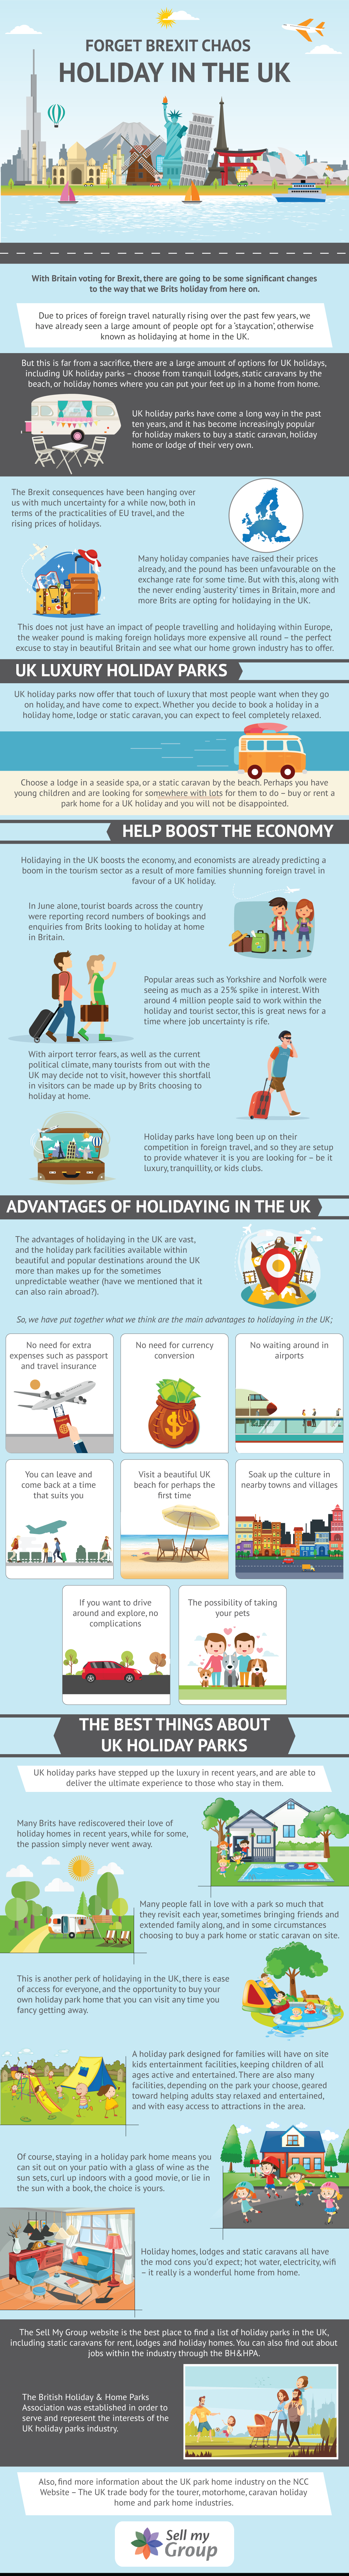 Forget Brexit Chaos - Holiday in the UK Infographic